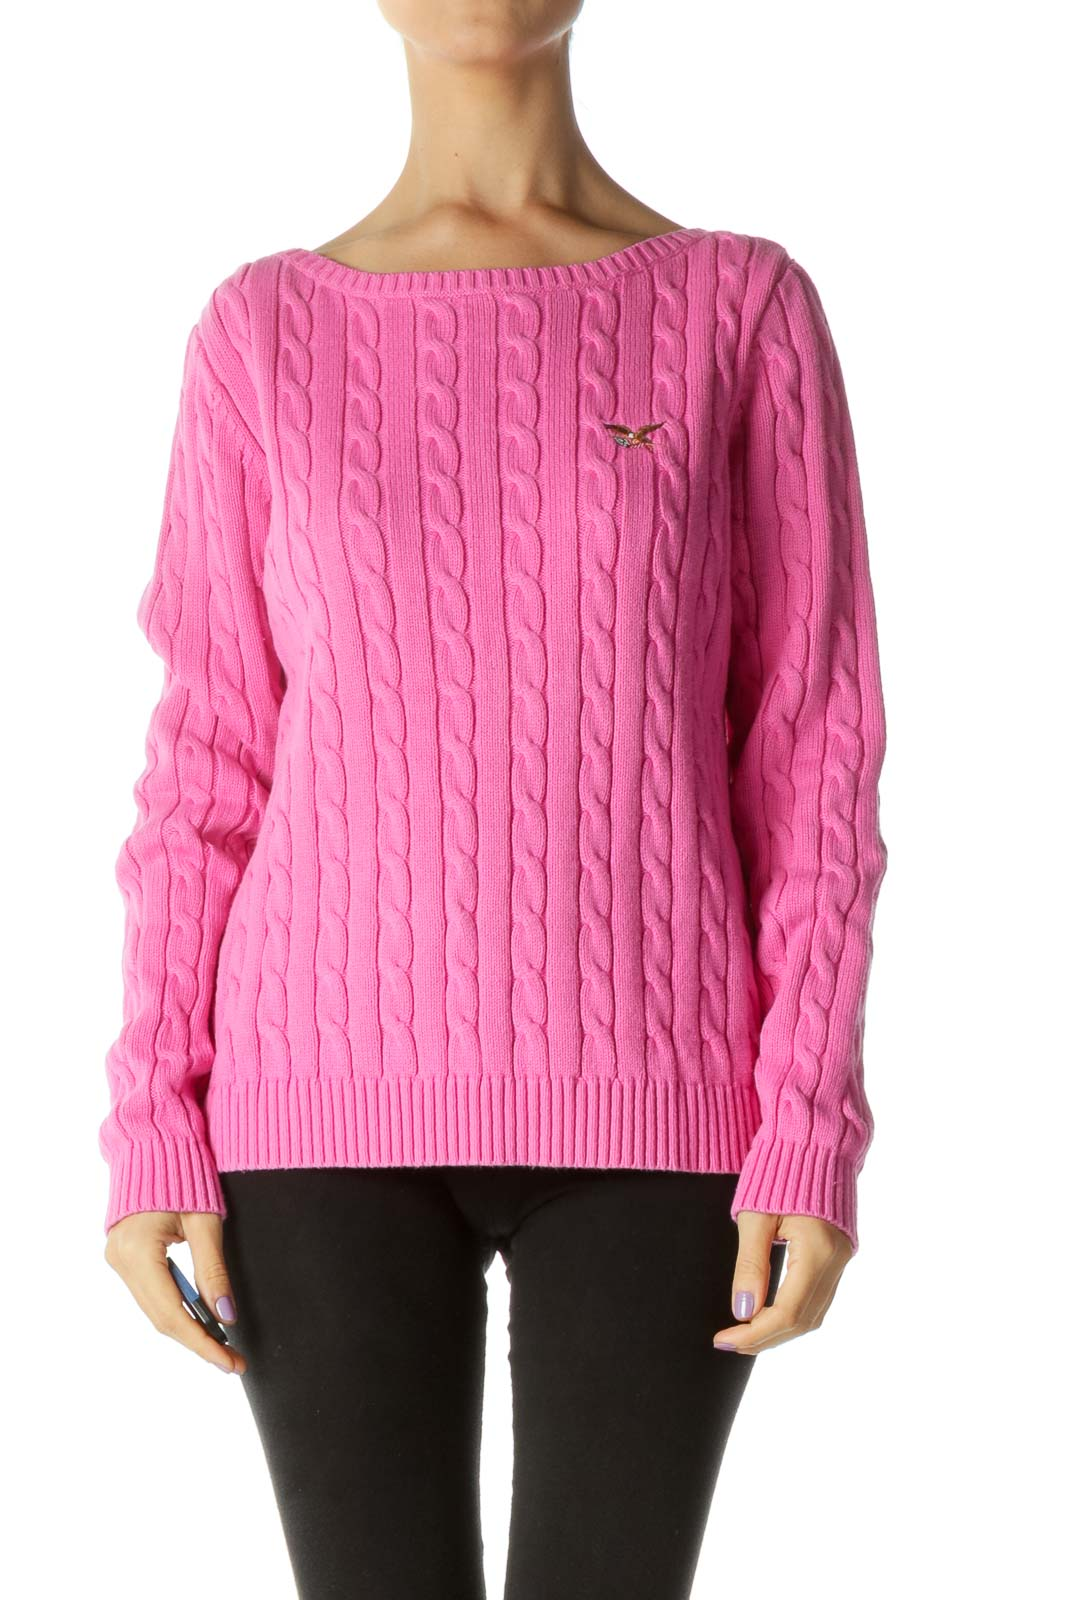 Pink Cable Knit Sweater Front